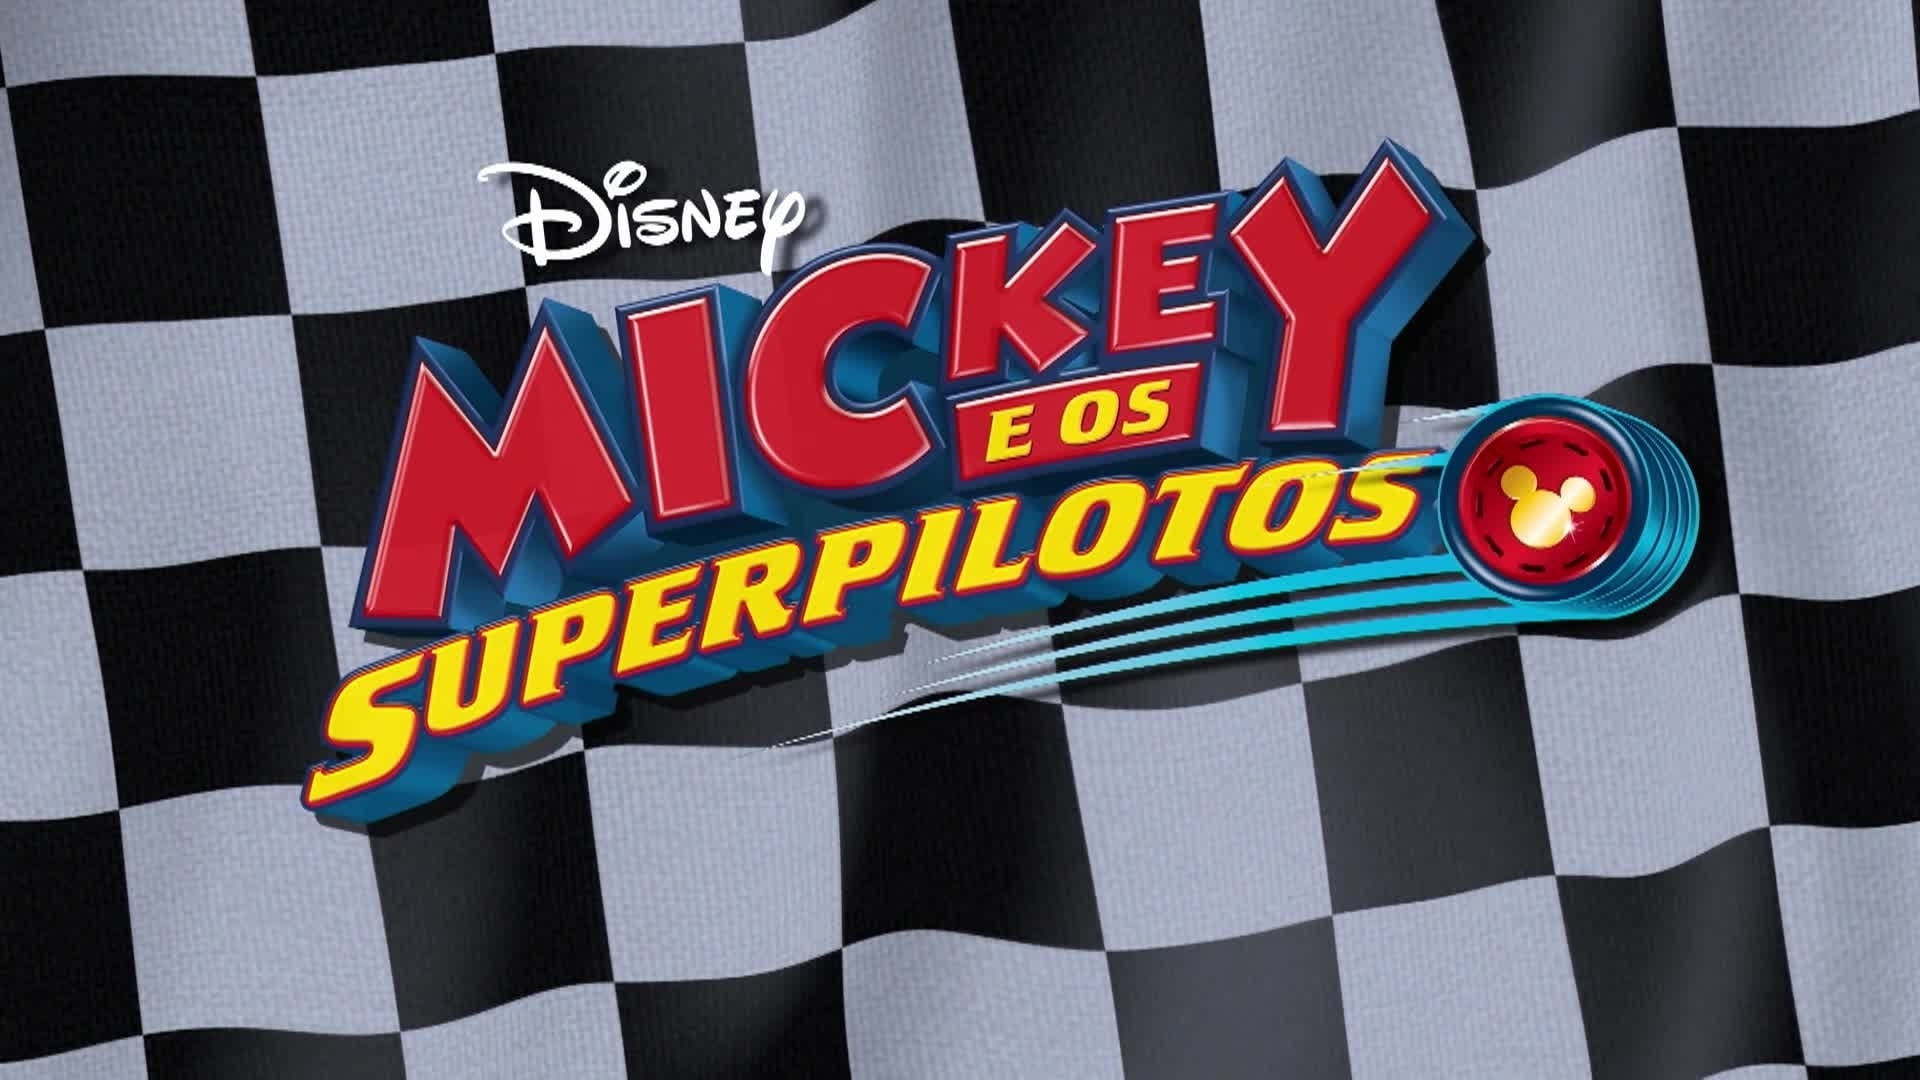 Mickey e os Superpilotos - Genérico